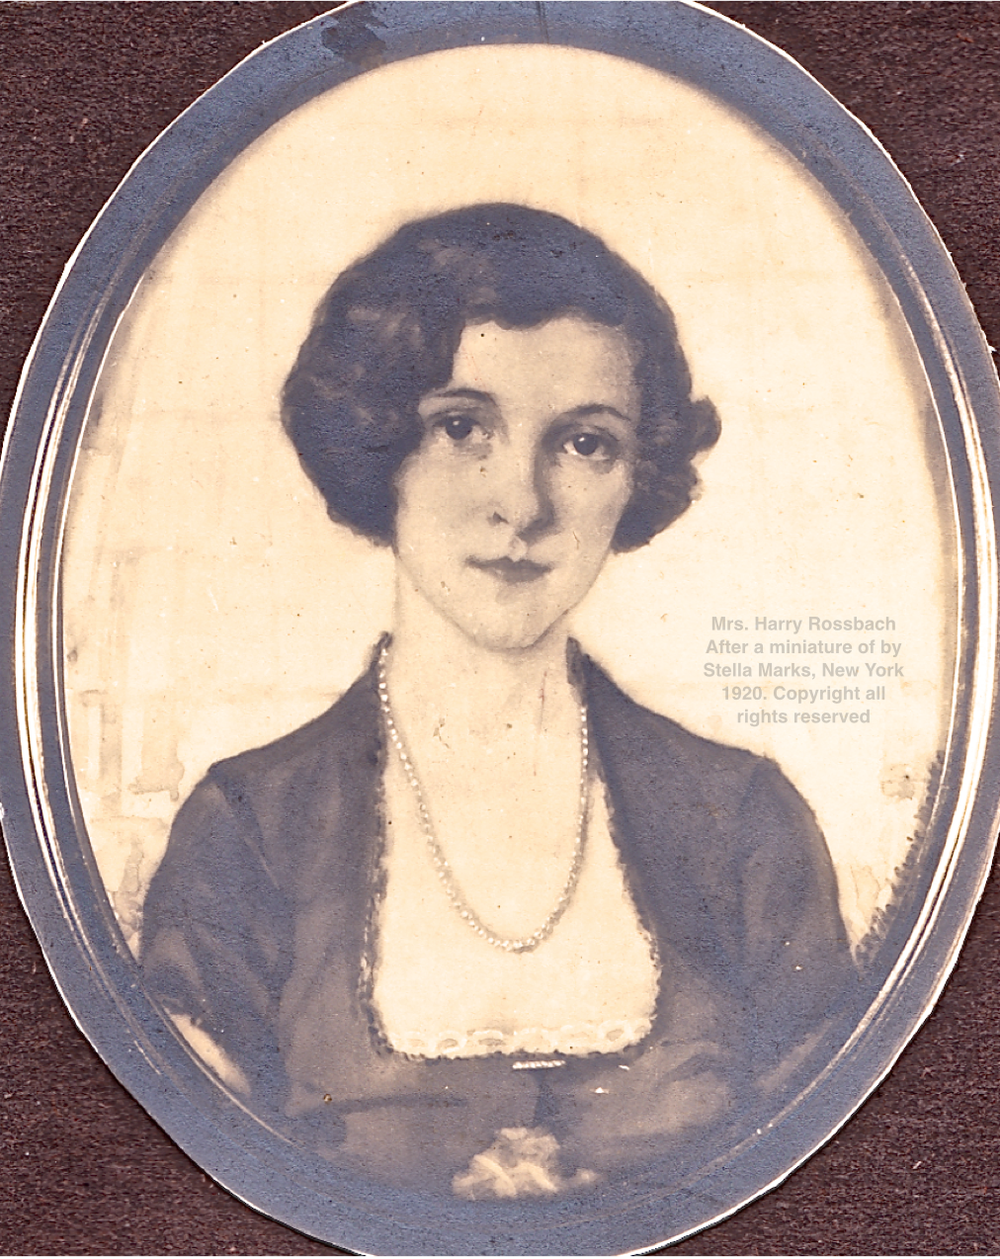 Mrs. Harry Rossbach (later Sophie Gimbel) After a miniature of by Stella Marks, New York 1920. Copyright all rights reserved